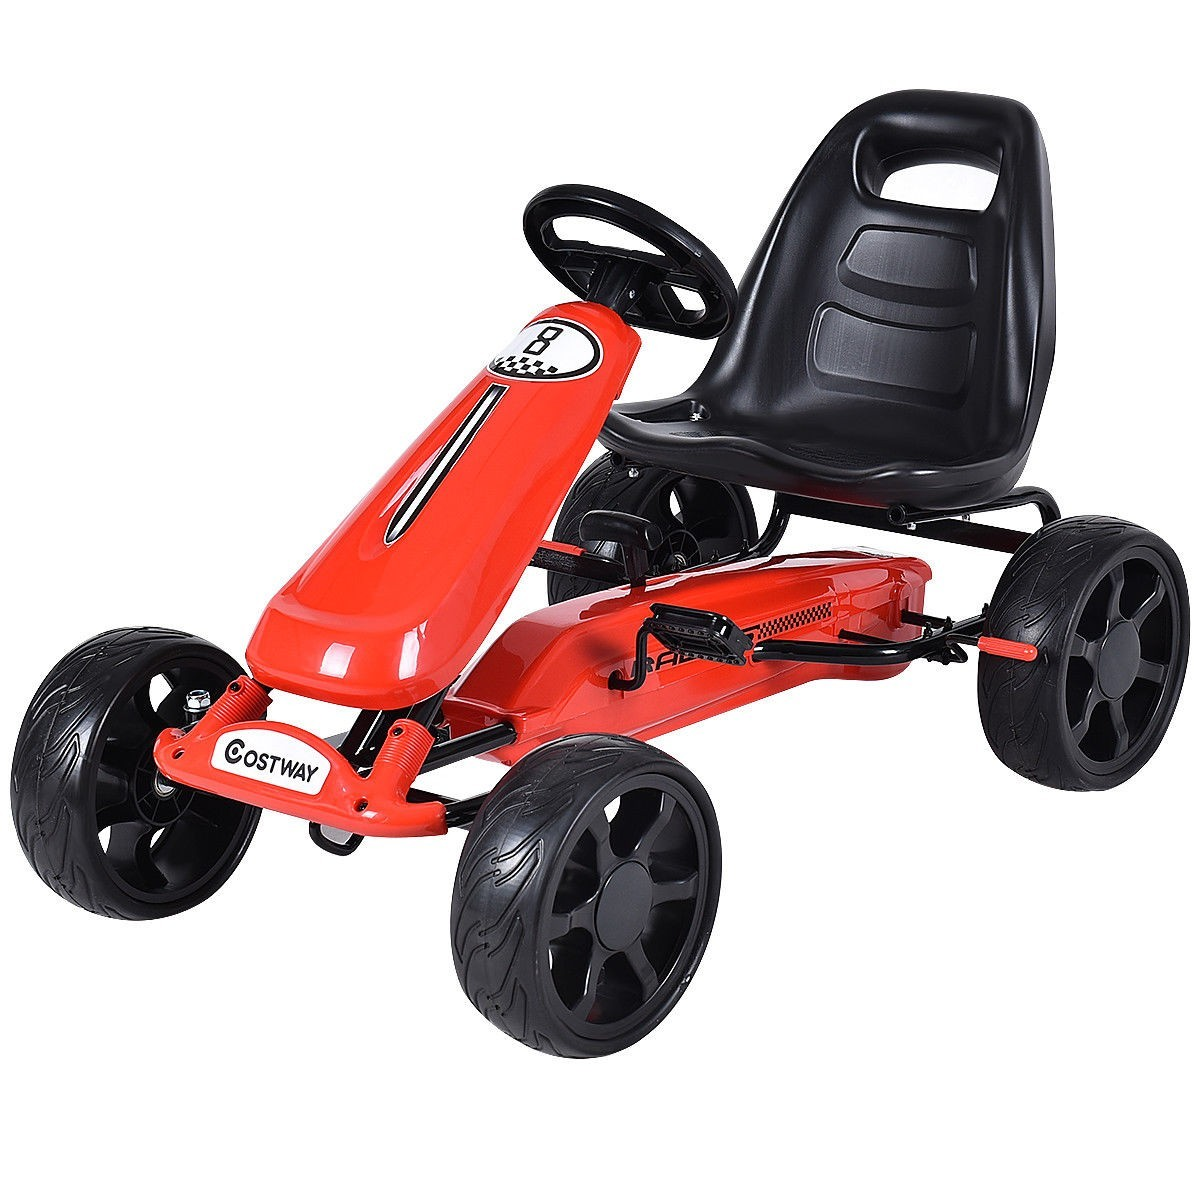 Outdoor Kids 4 Wheel Pedal Powered Riding Kart Car Navy by